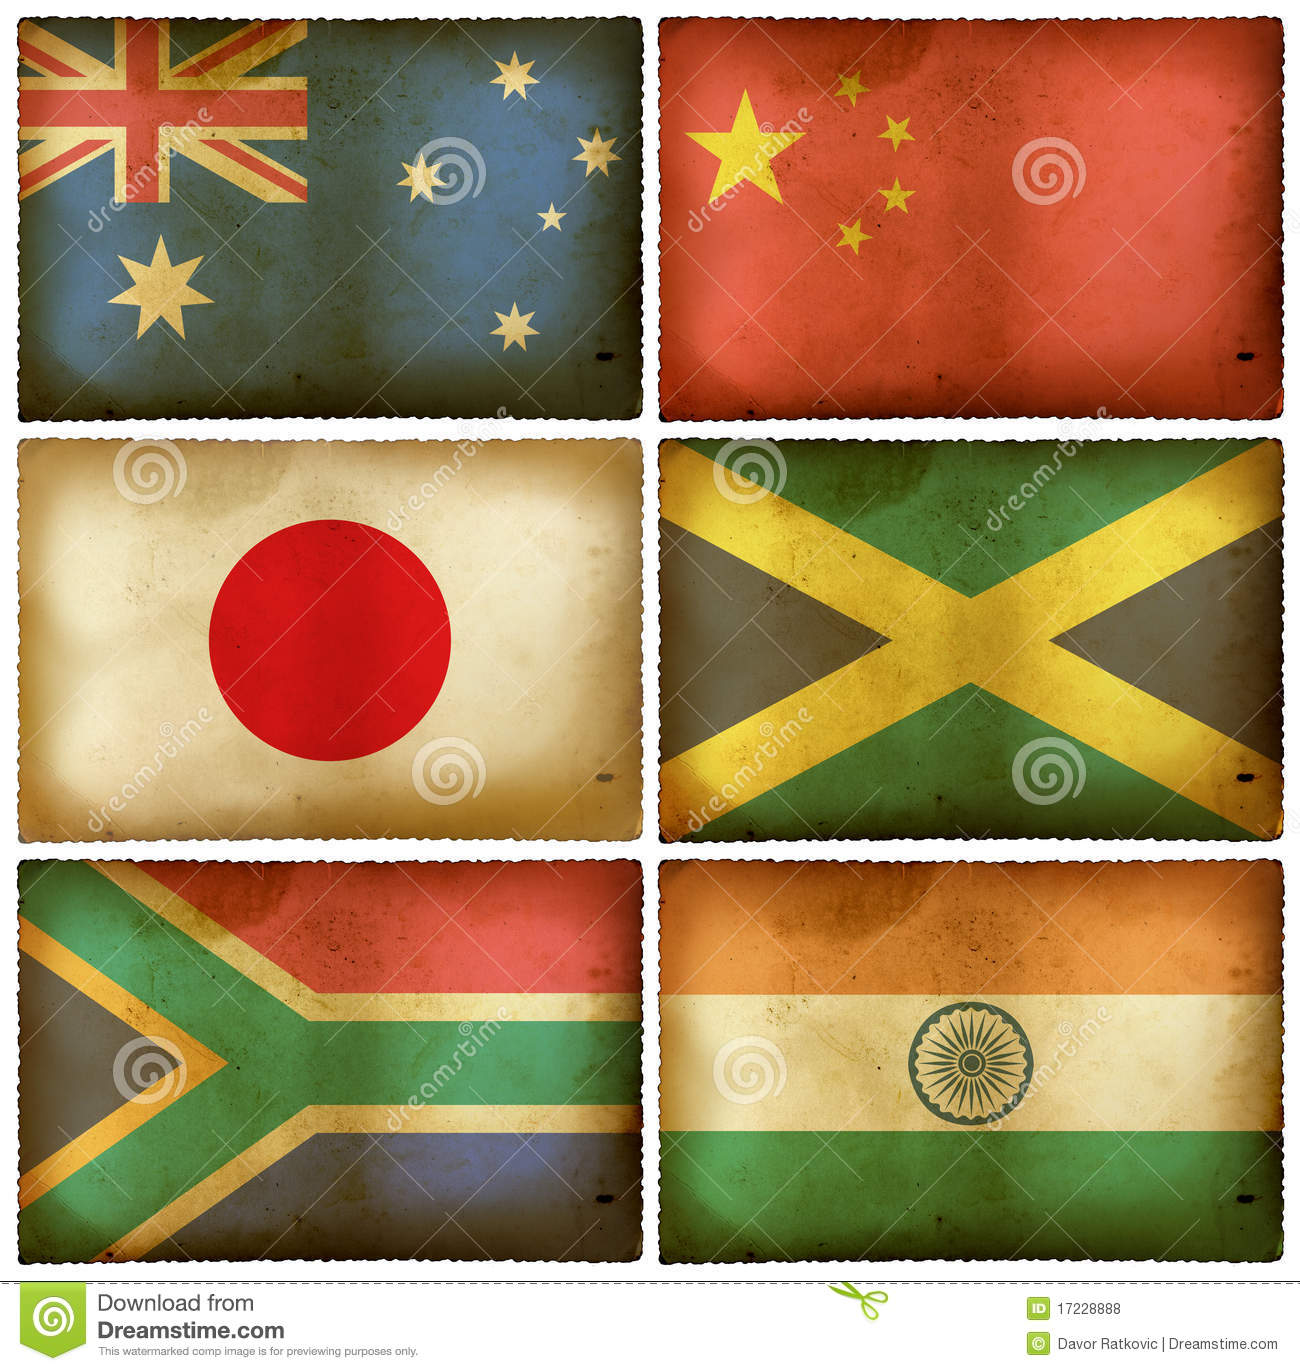 Vintage flags set mix